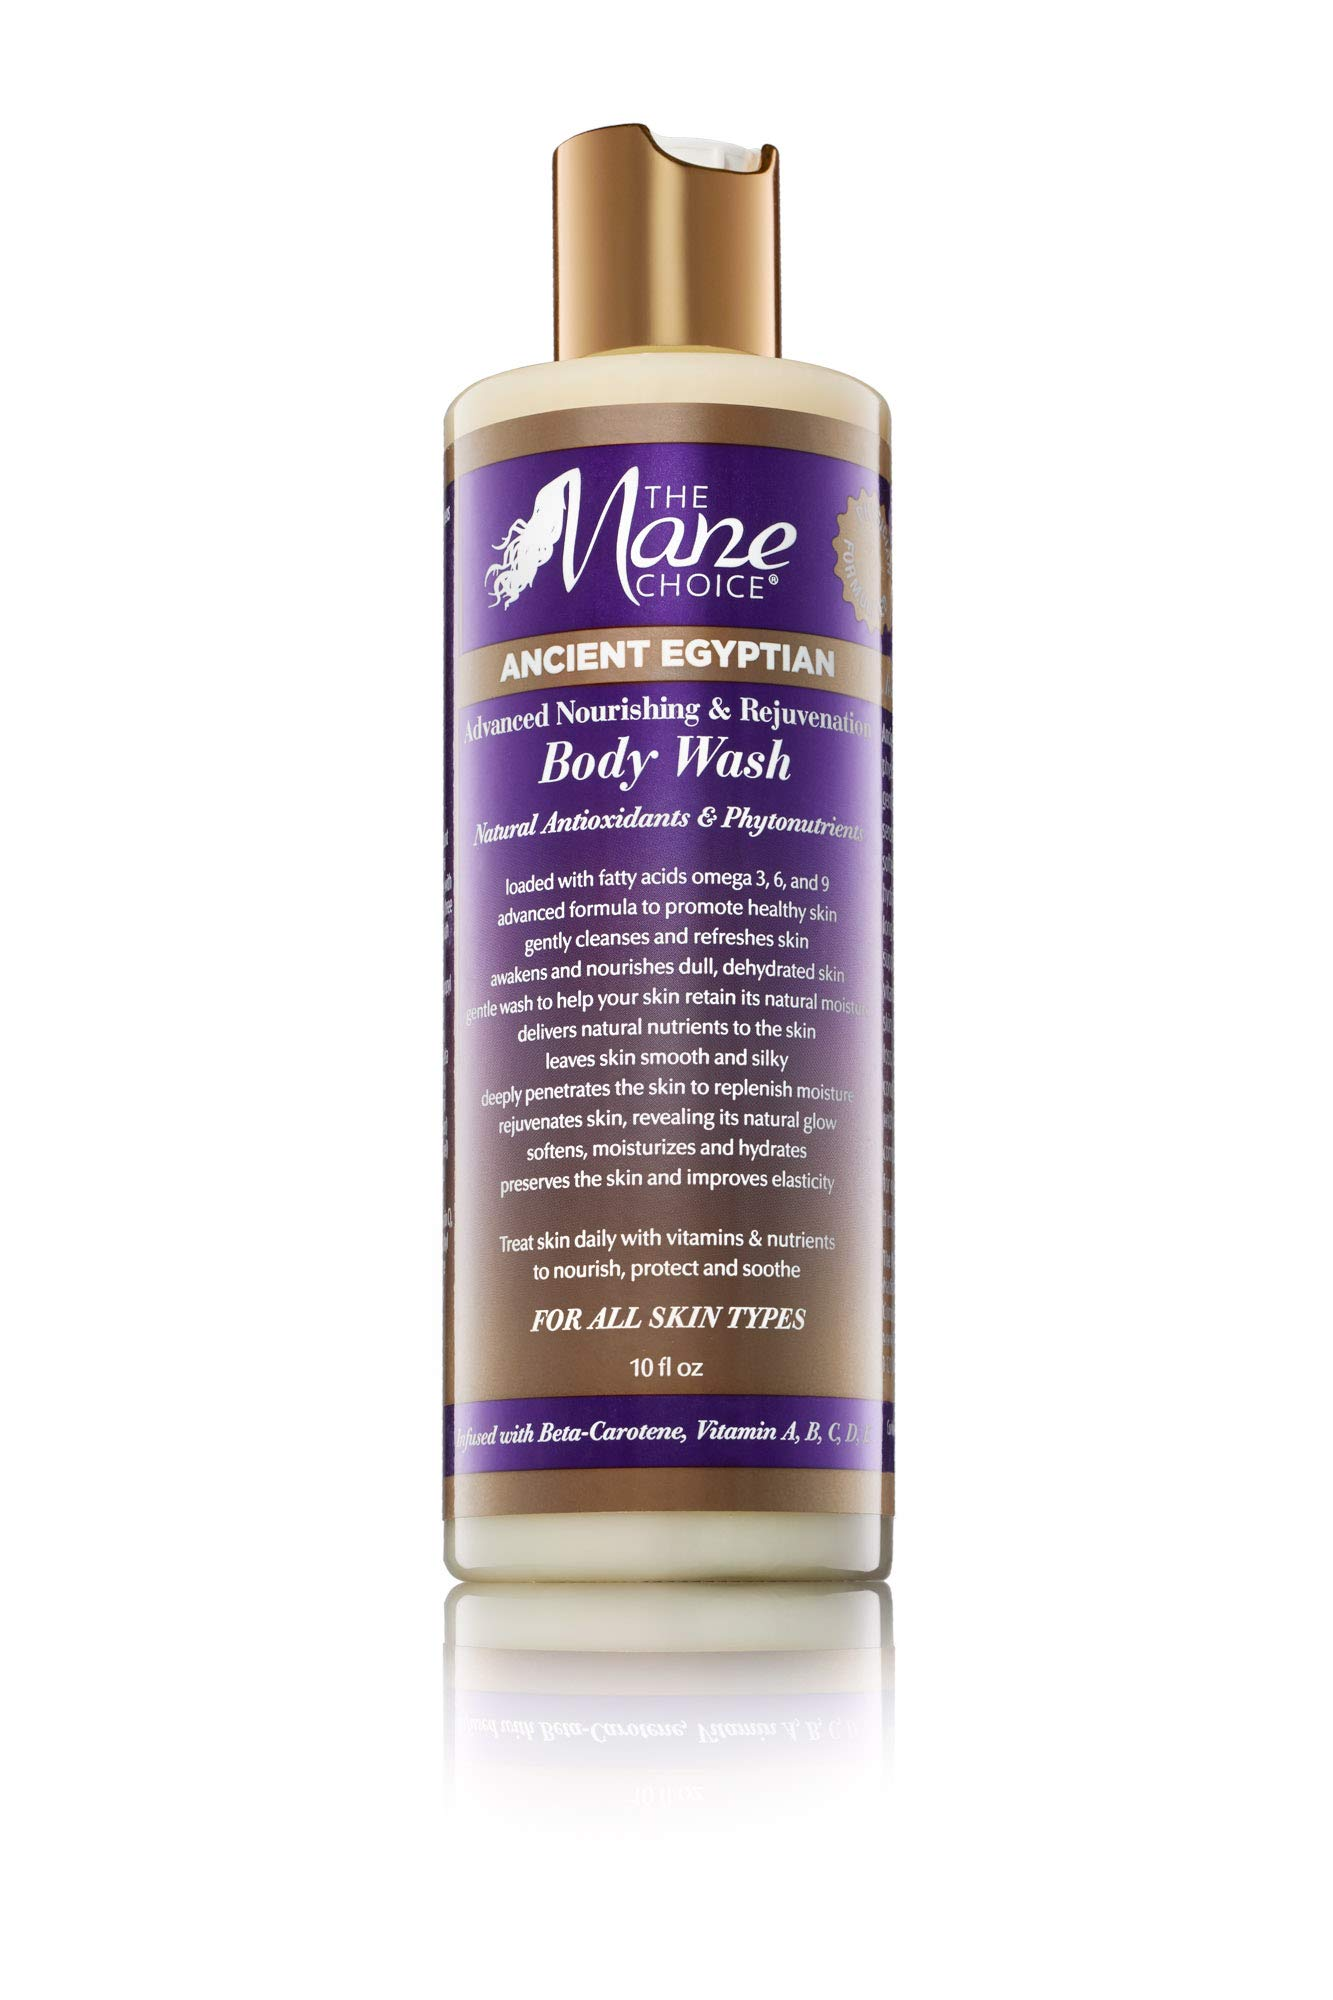 THE MANE CHOICE Ancient Egyptian Advanced Nourishing & Rejuvenation Body Wash - Unique Blend of Vitamins And Nutrients To Soften, Moisturize and Hydrate Your Skin (10 Ounces/295 Milliliters)